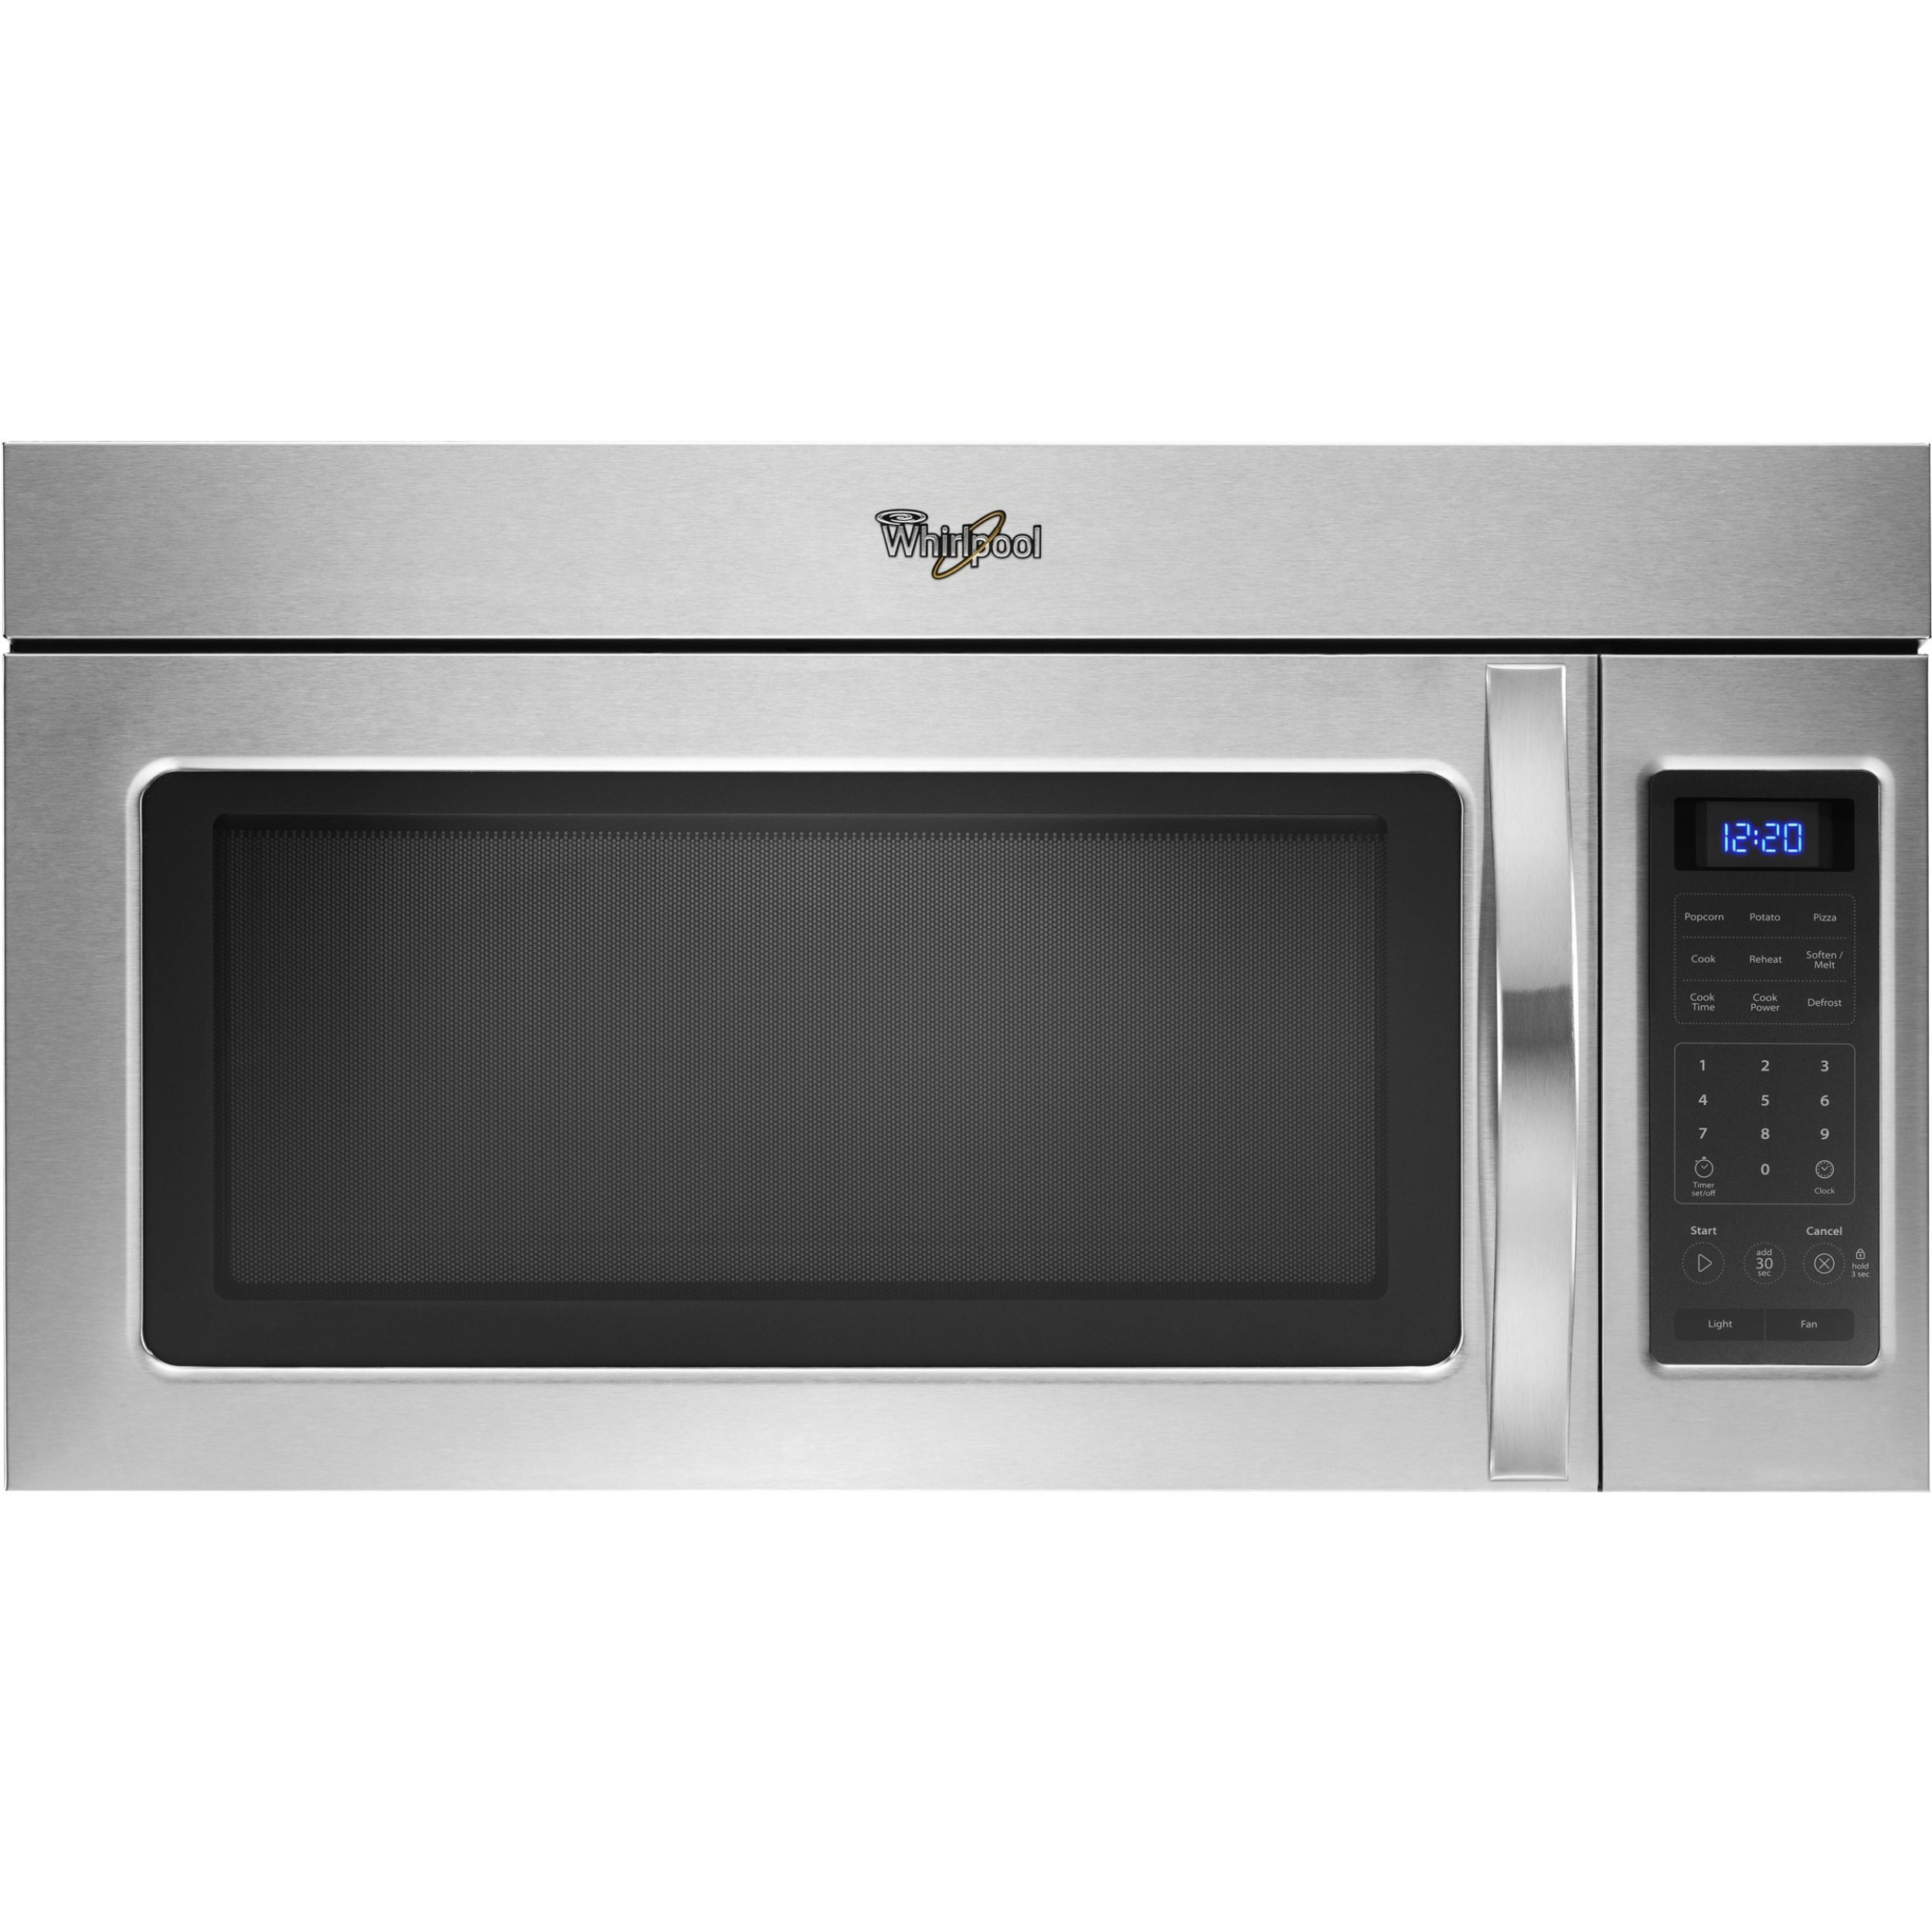 whirlpool wmh31017as 1 7 cu ft over the range microwave with 2 speed fan walmart com